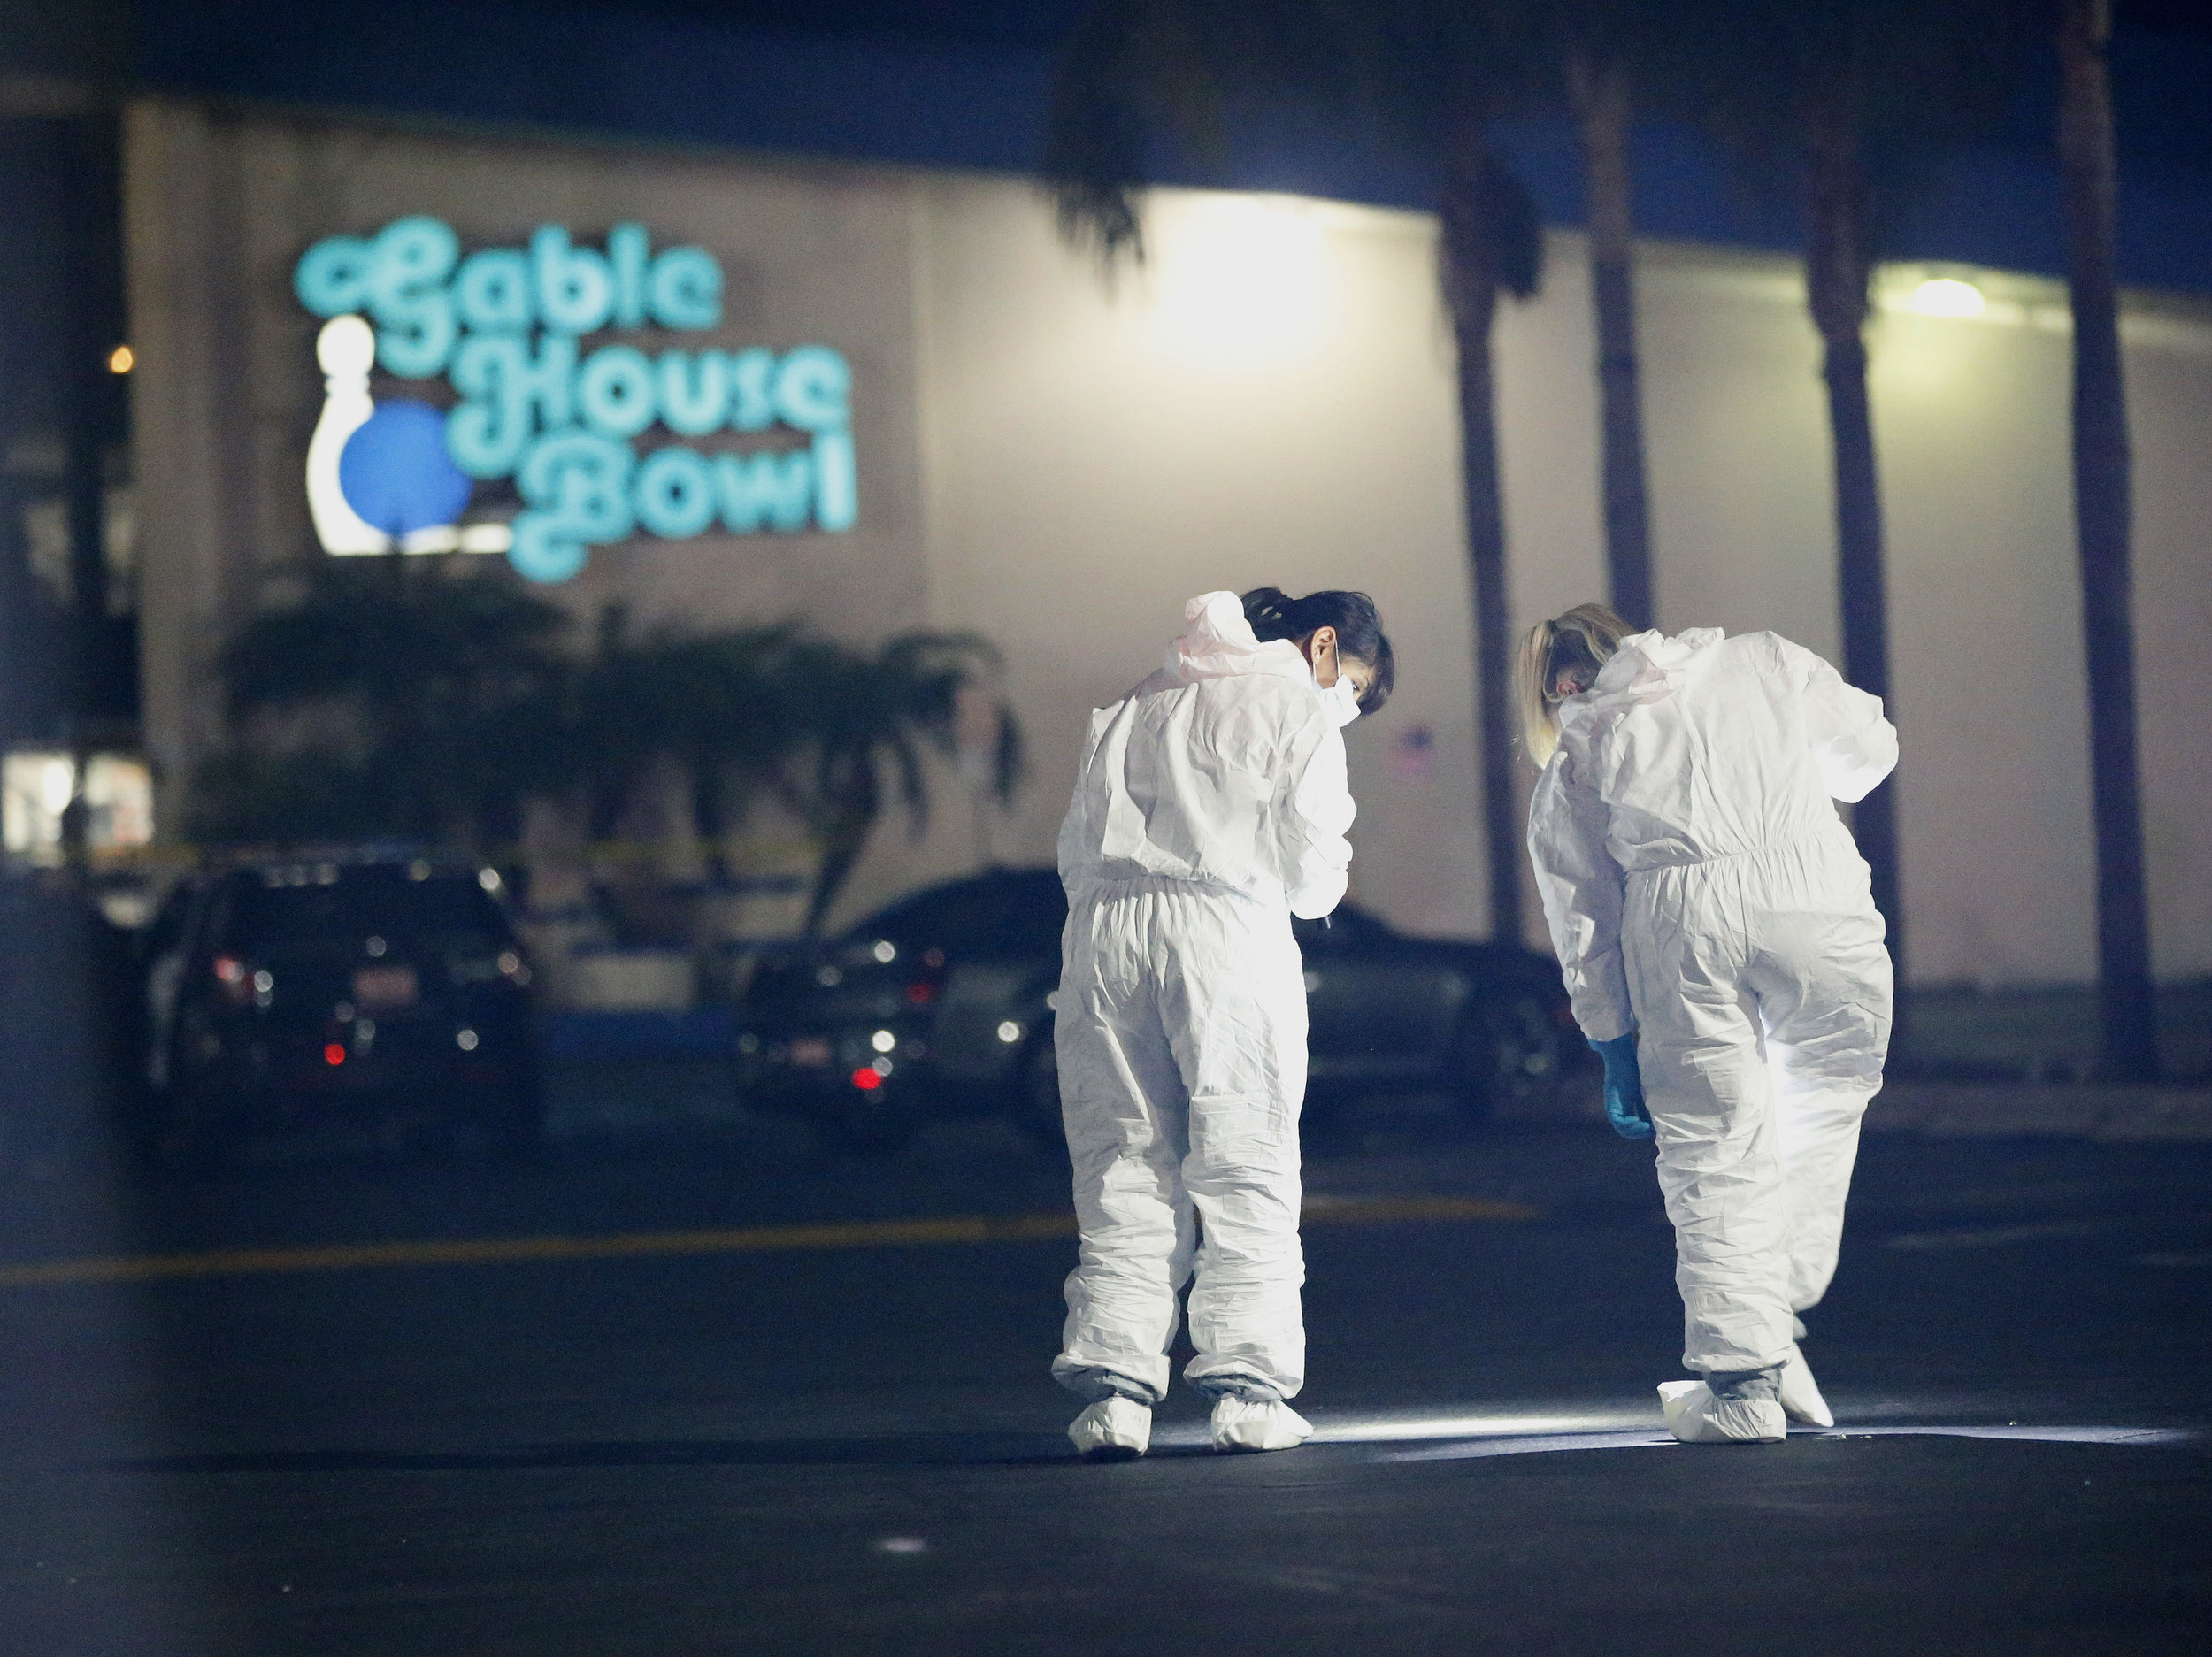 Police officers and investigators work the scene after a fatal shooting in Torrance, California, Saturday, Jan. 5, 2019. Three people died in a shooting at a bowling alley in Torrance and four others were injured, authorities said.